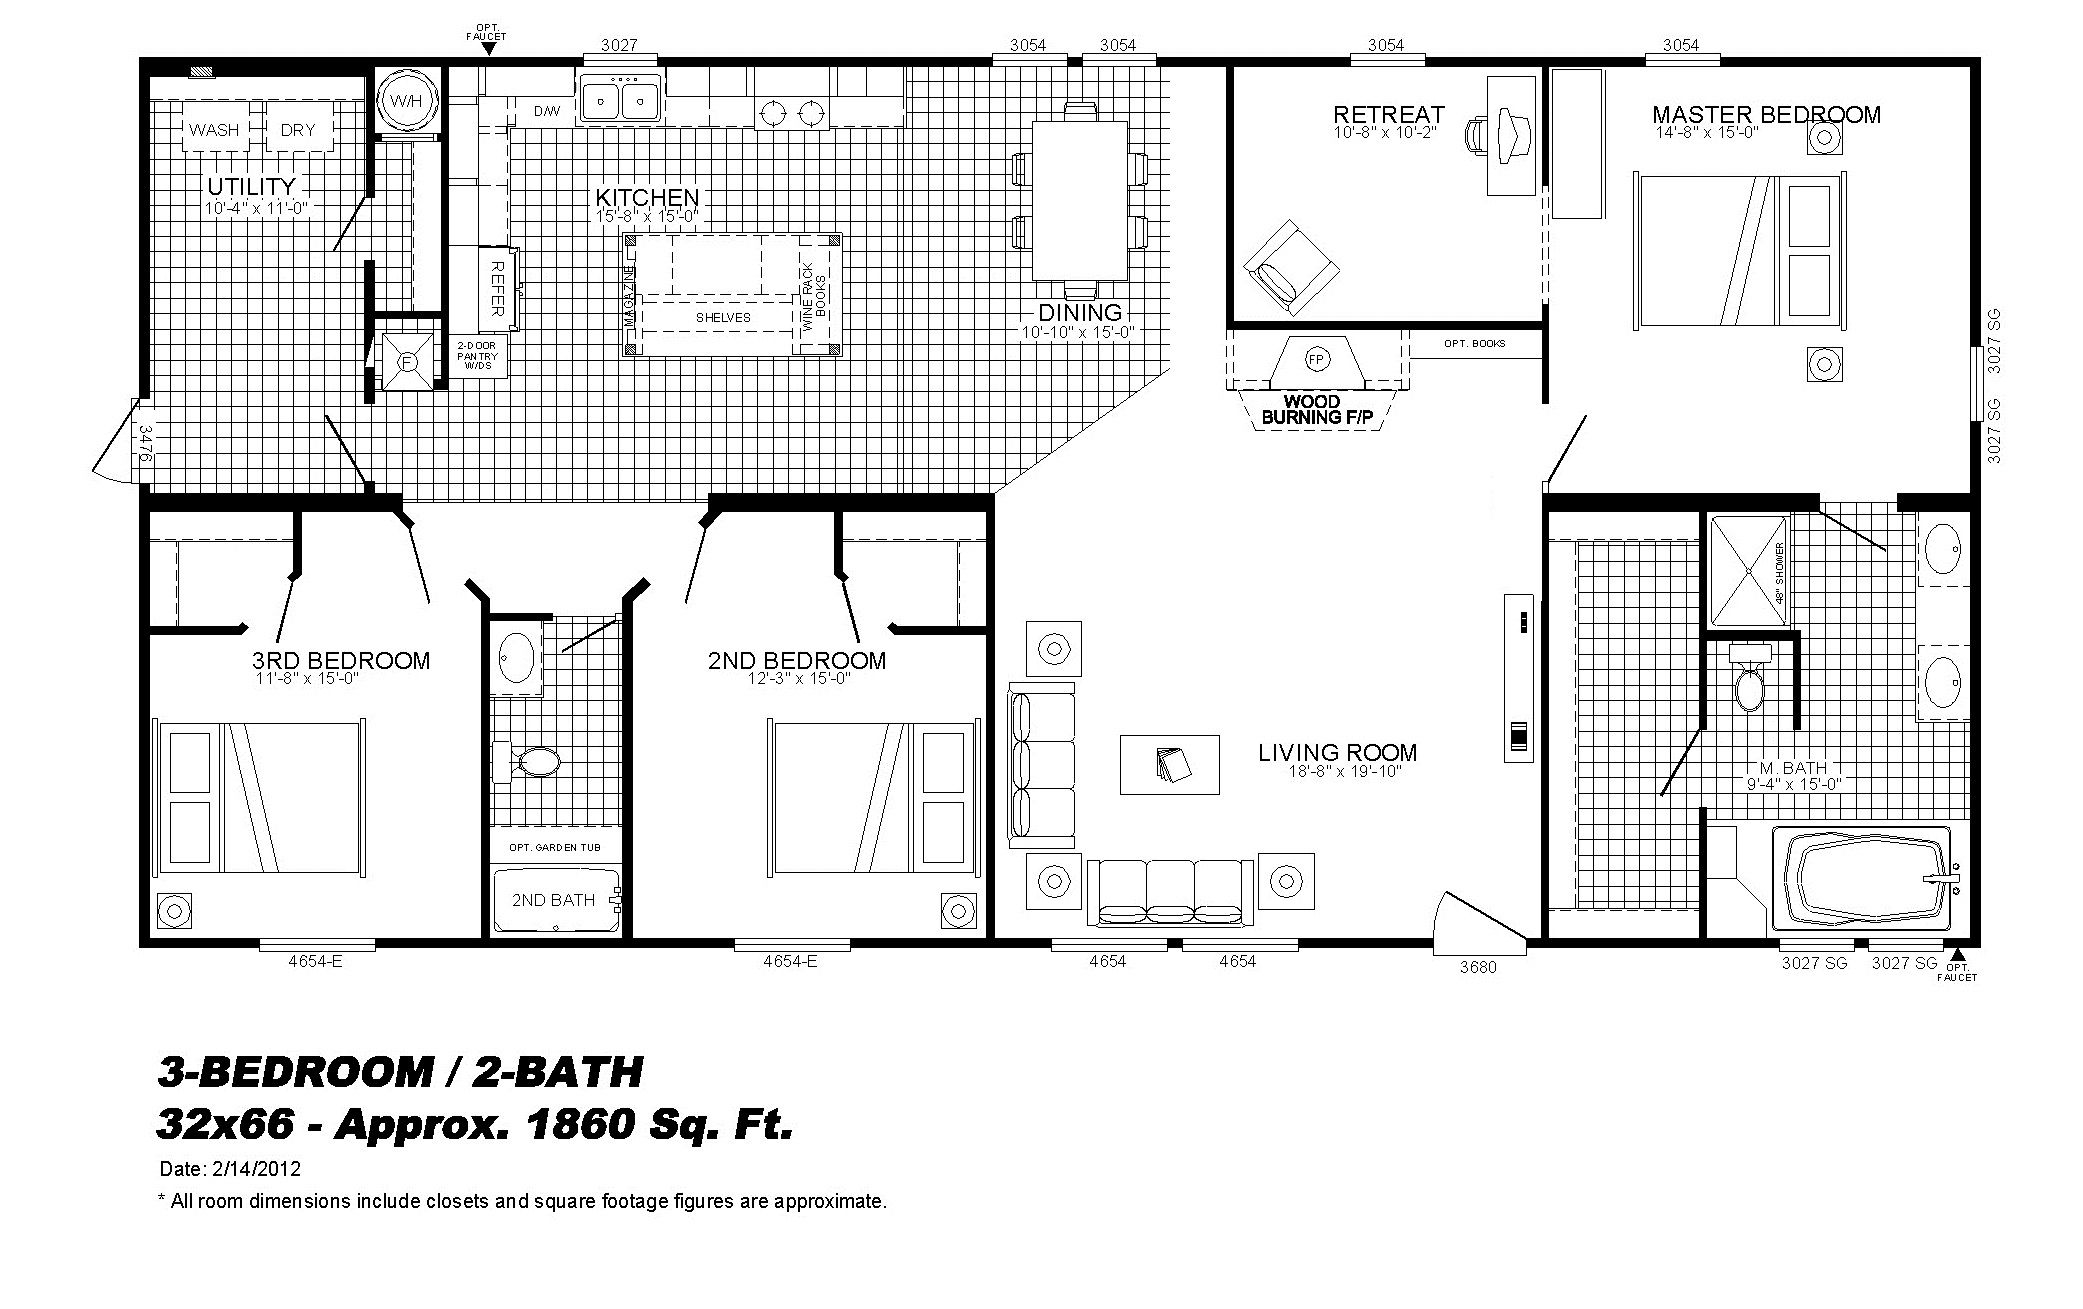 3bedrooms with parents retreat don t love this floor plan but i